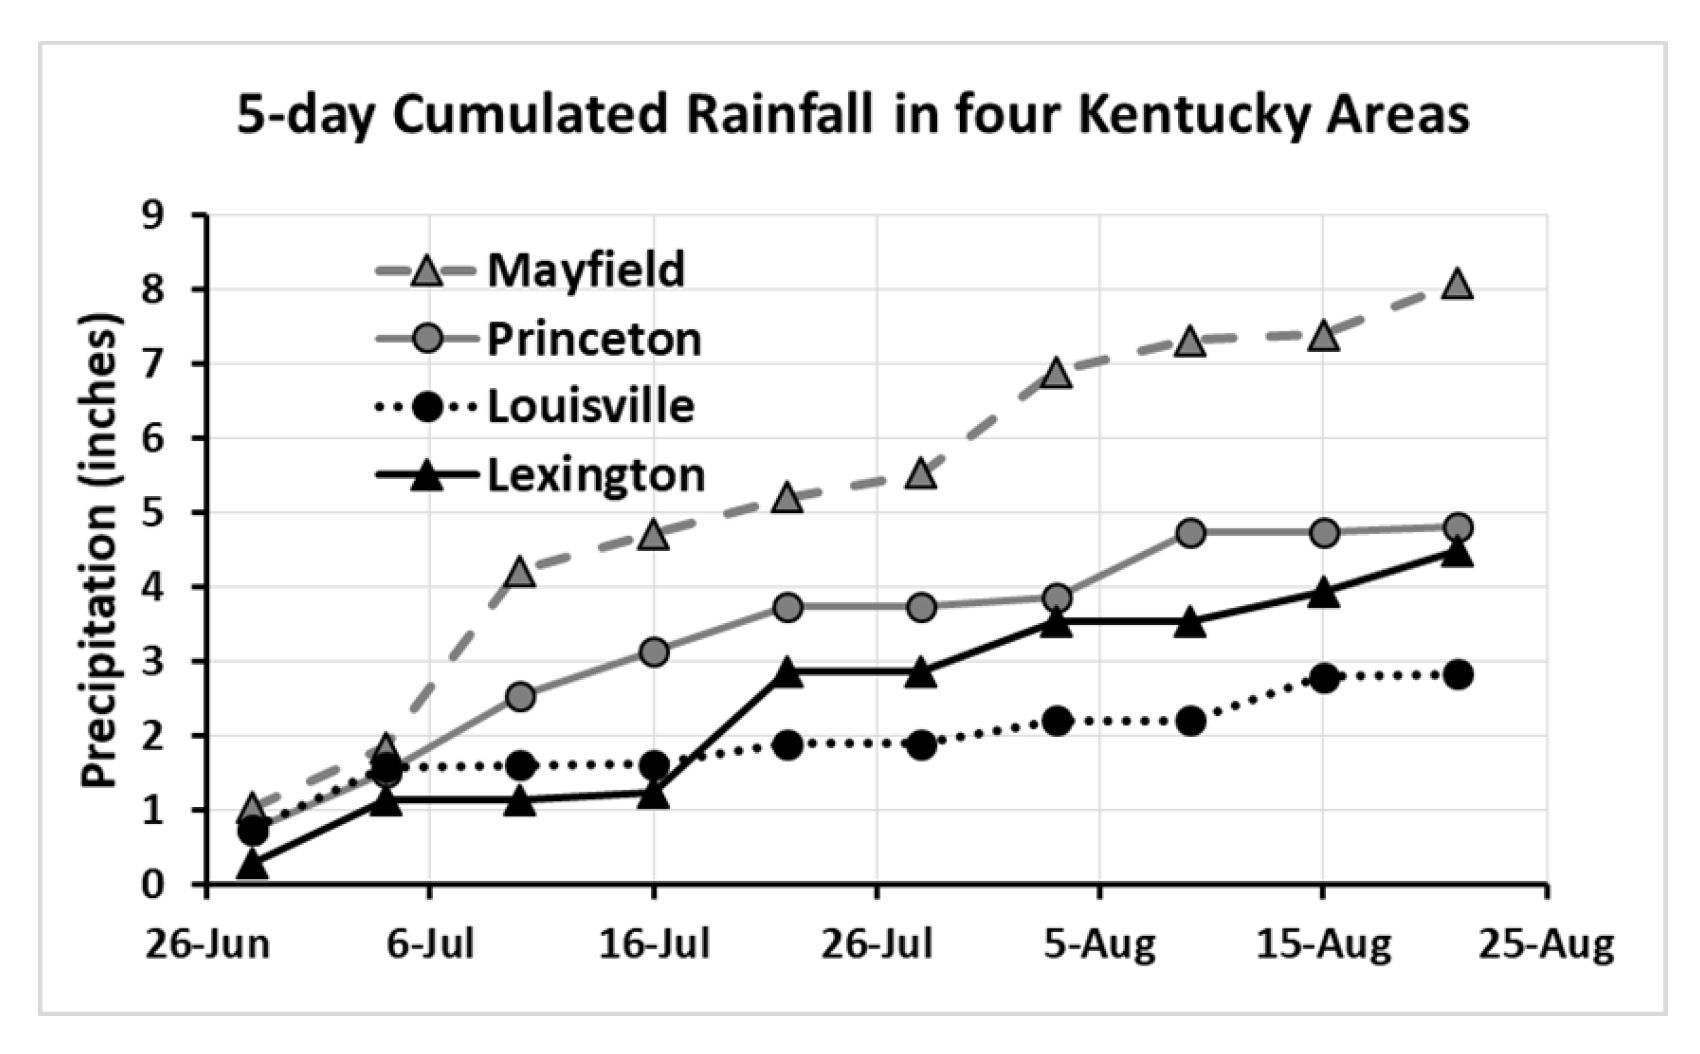 Figure 2. Cumulated rainfall from 26 June to 25 August 2019 in four Kentucky areas from west to east (Mayfield, Princeton, Louisville, and Lexington).